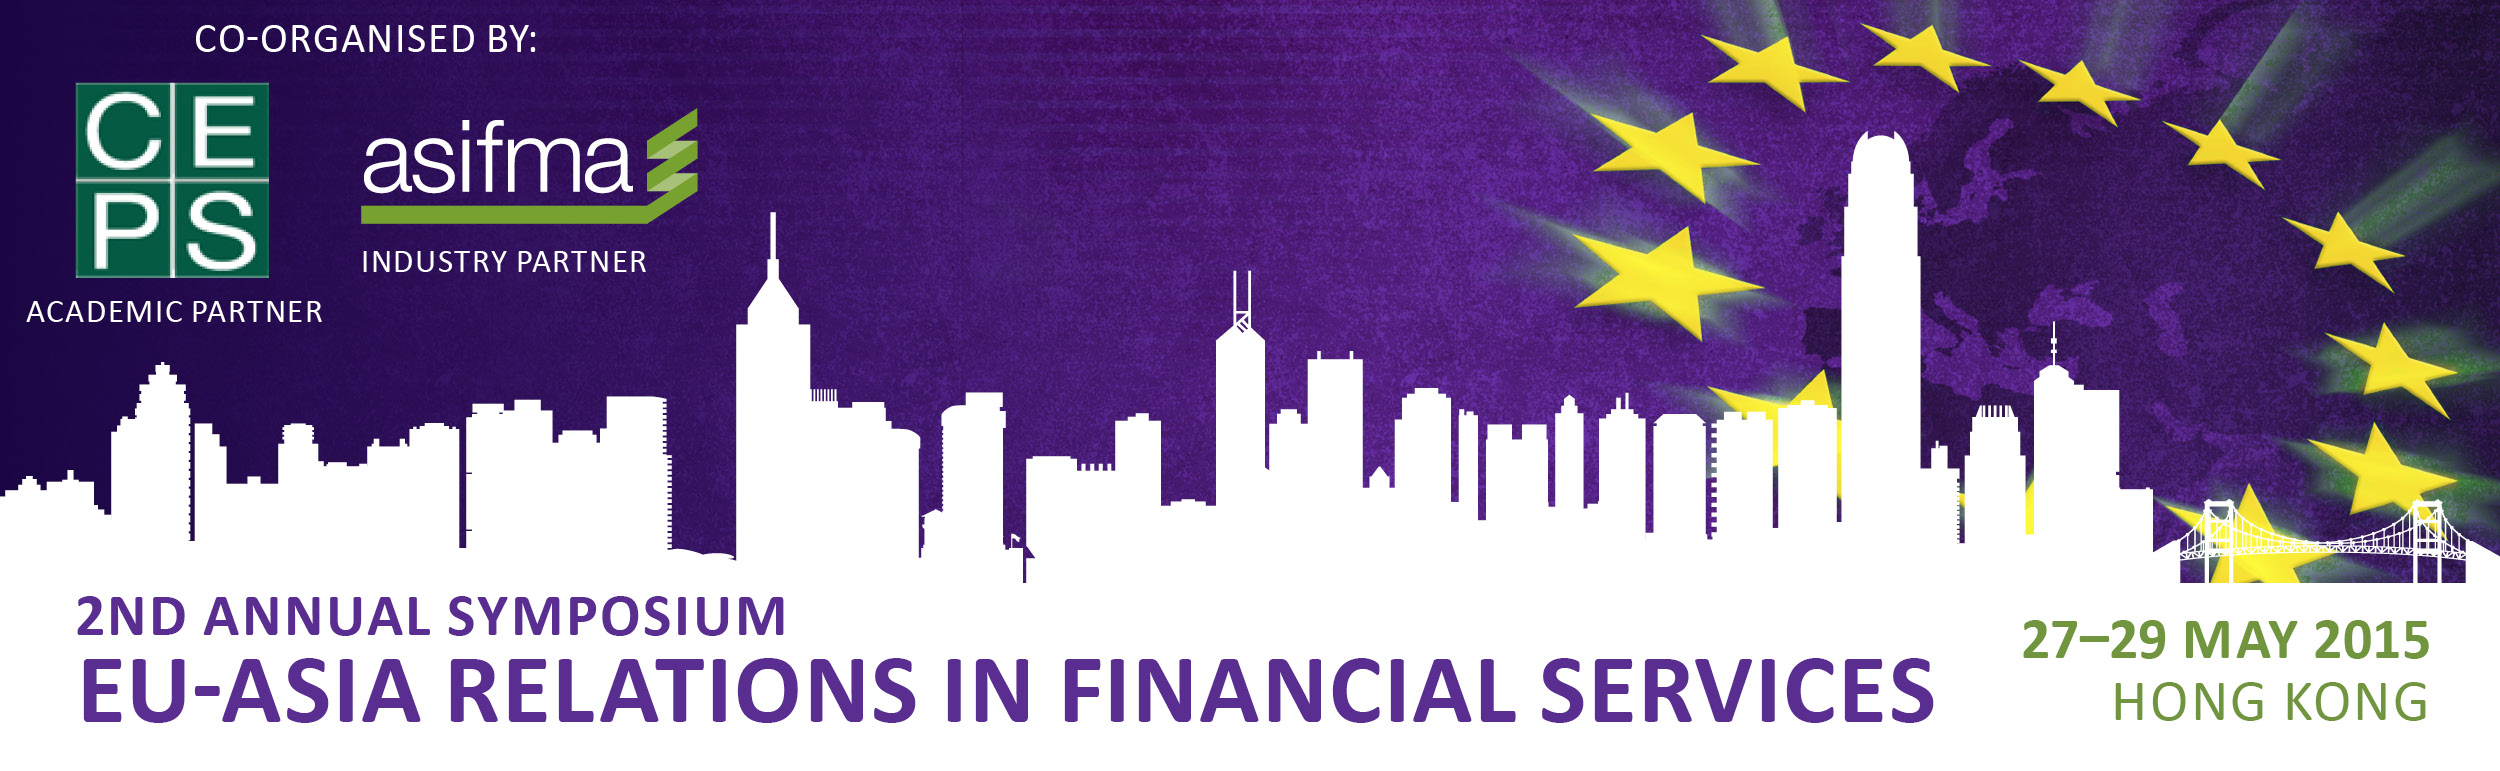 2nd Annual Symposium On Eu Asia Relations In Financial Services